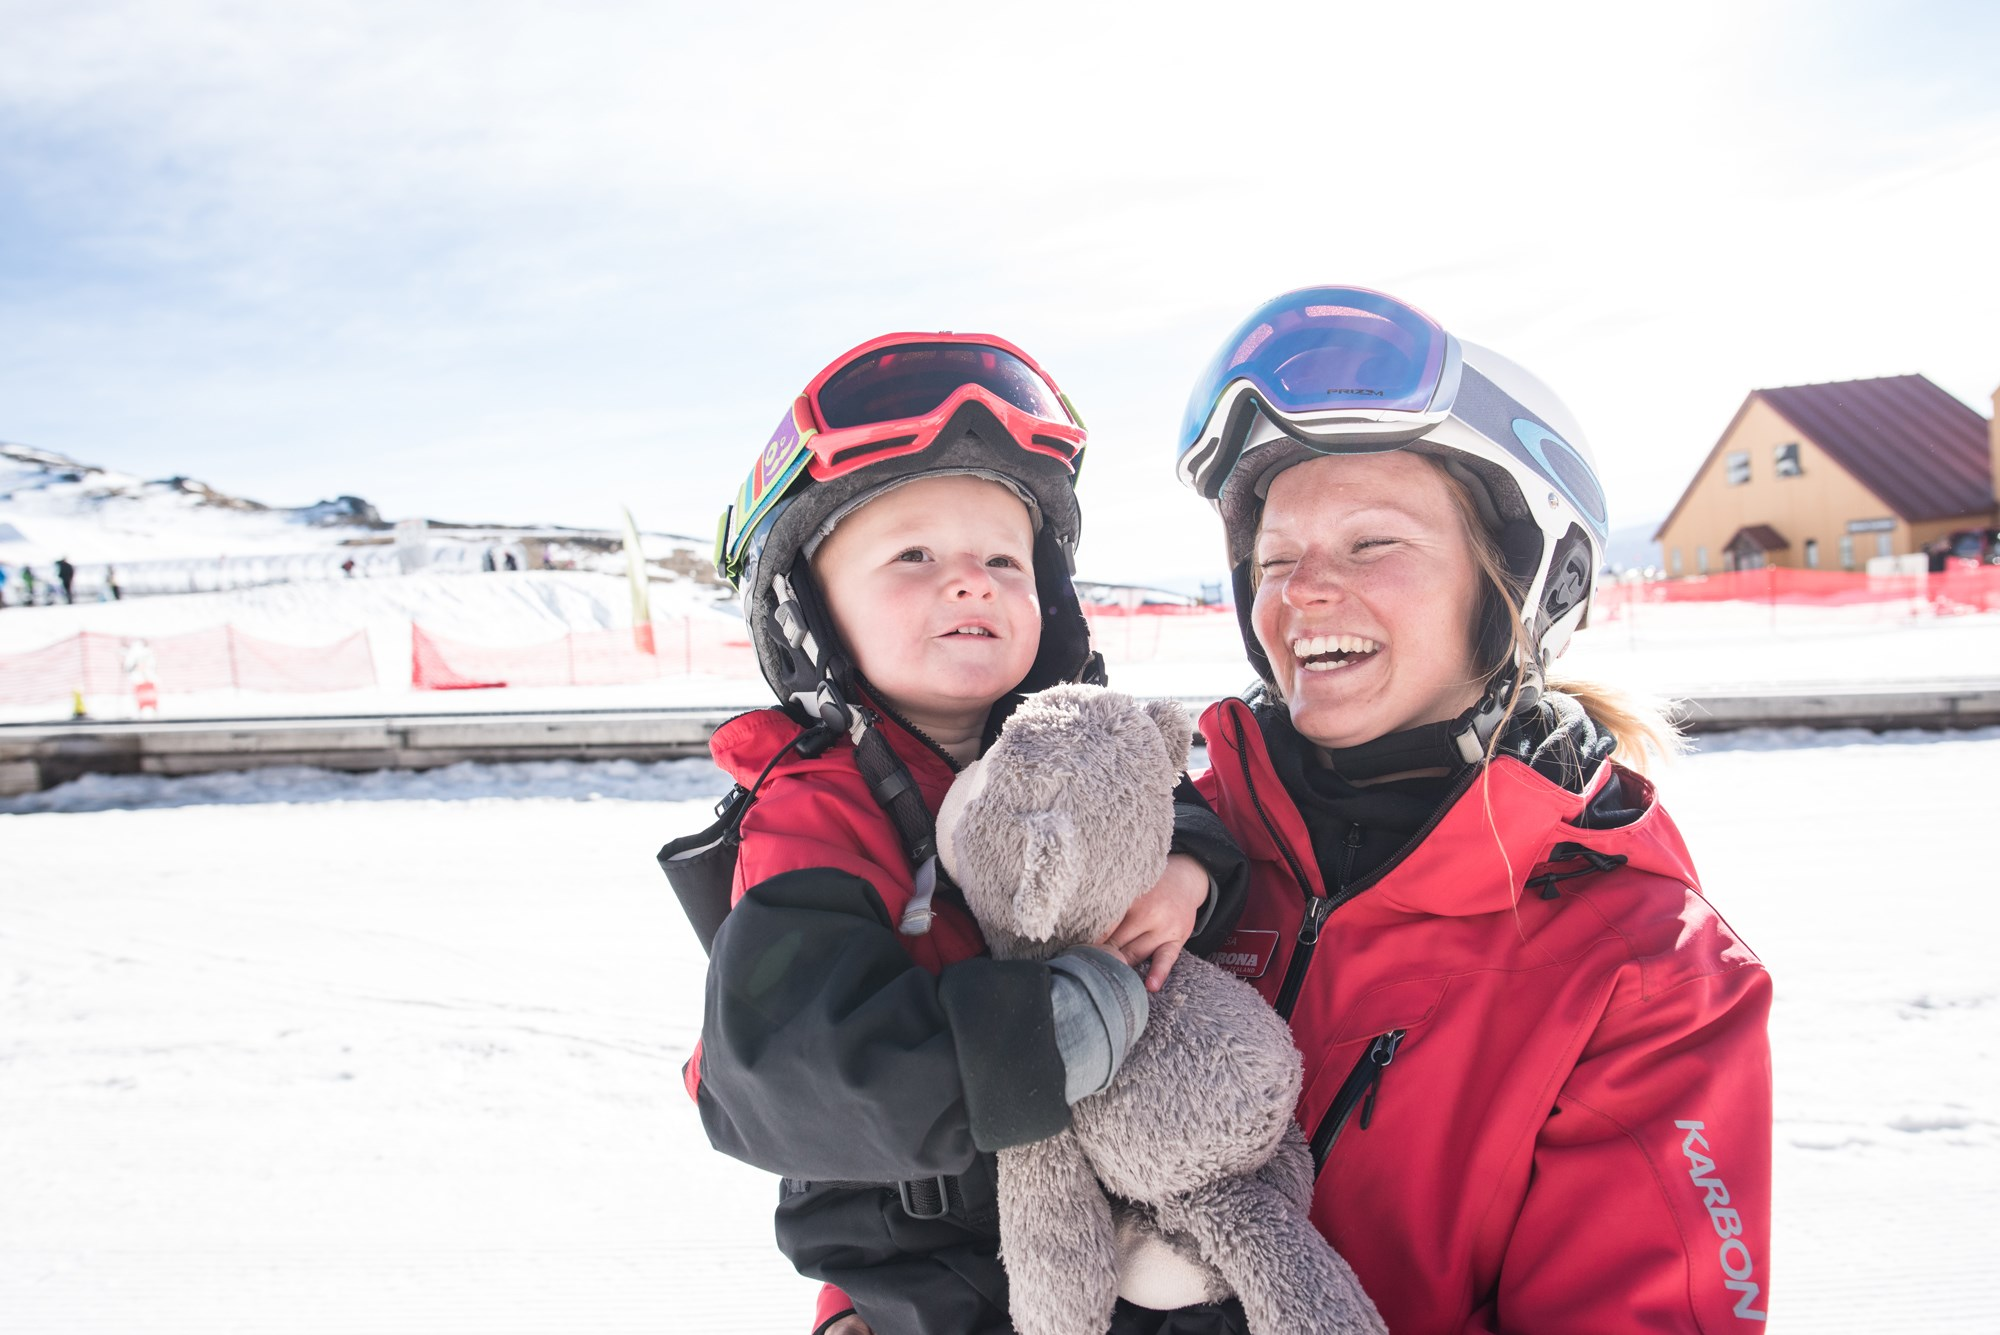 Kindy ski lessons & childcare Cardrona Alpine Resort